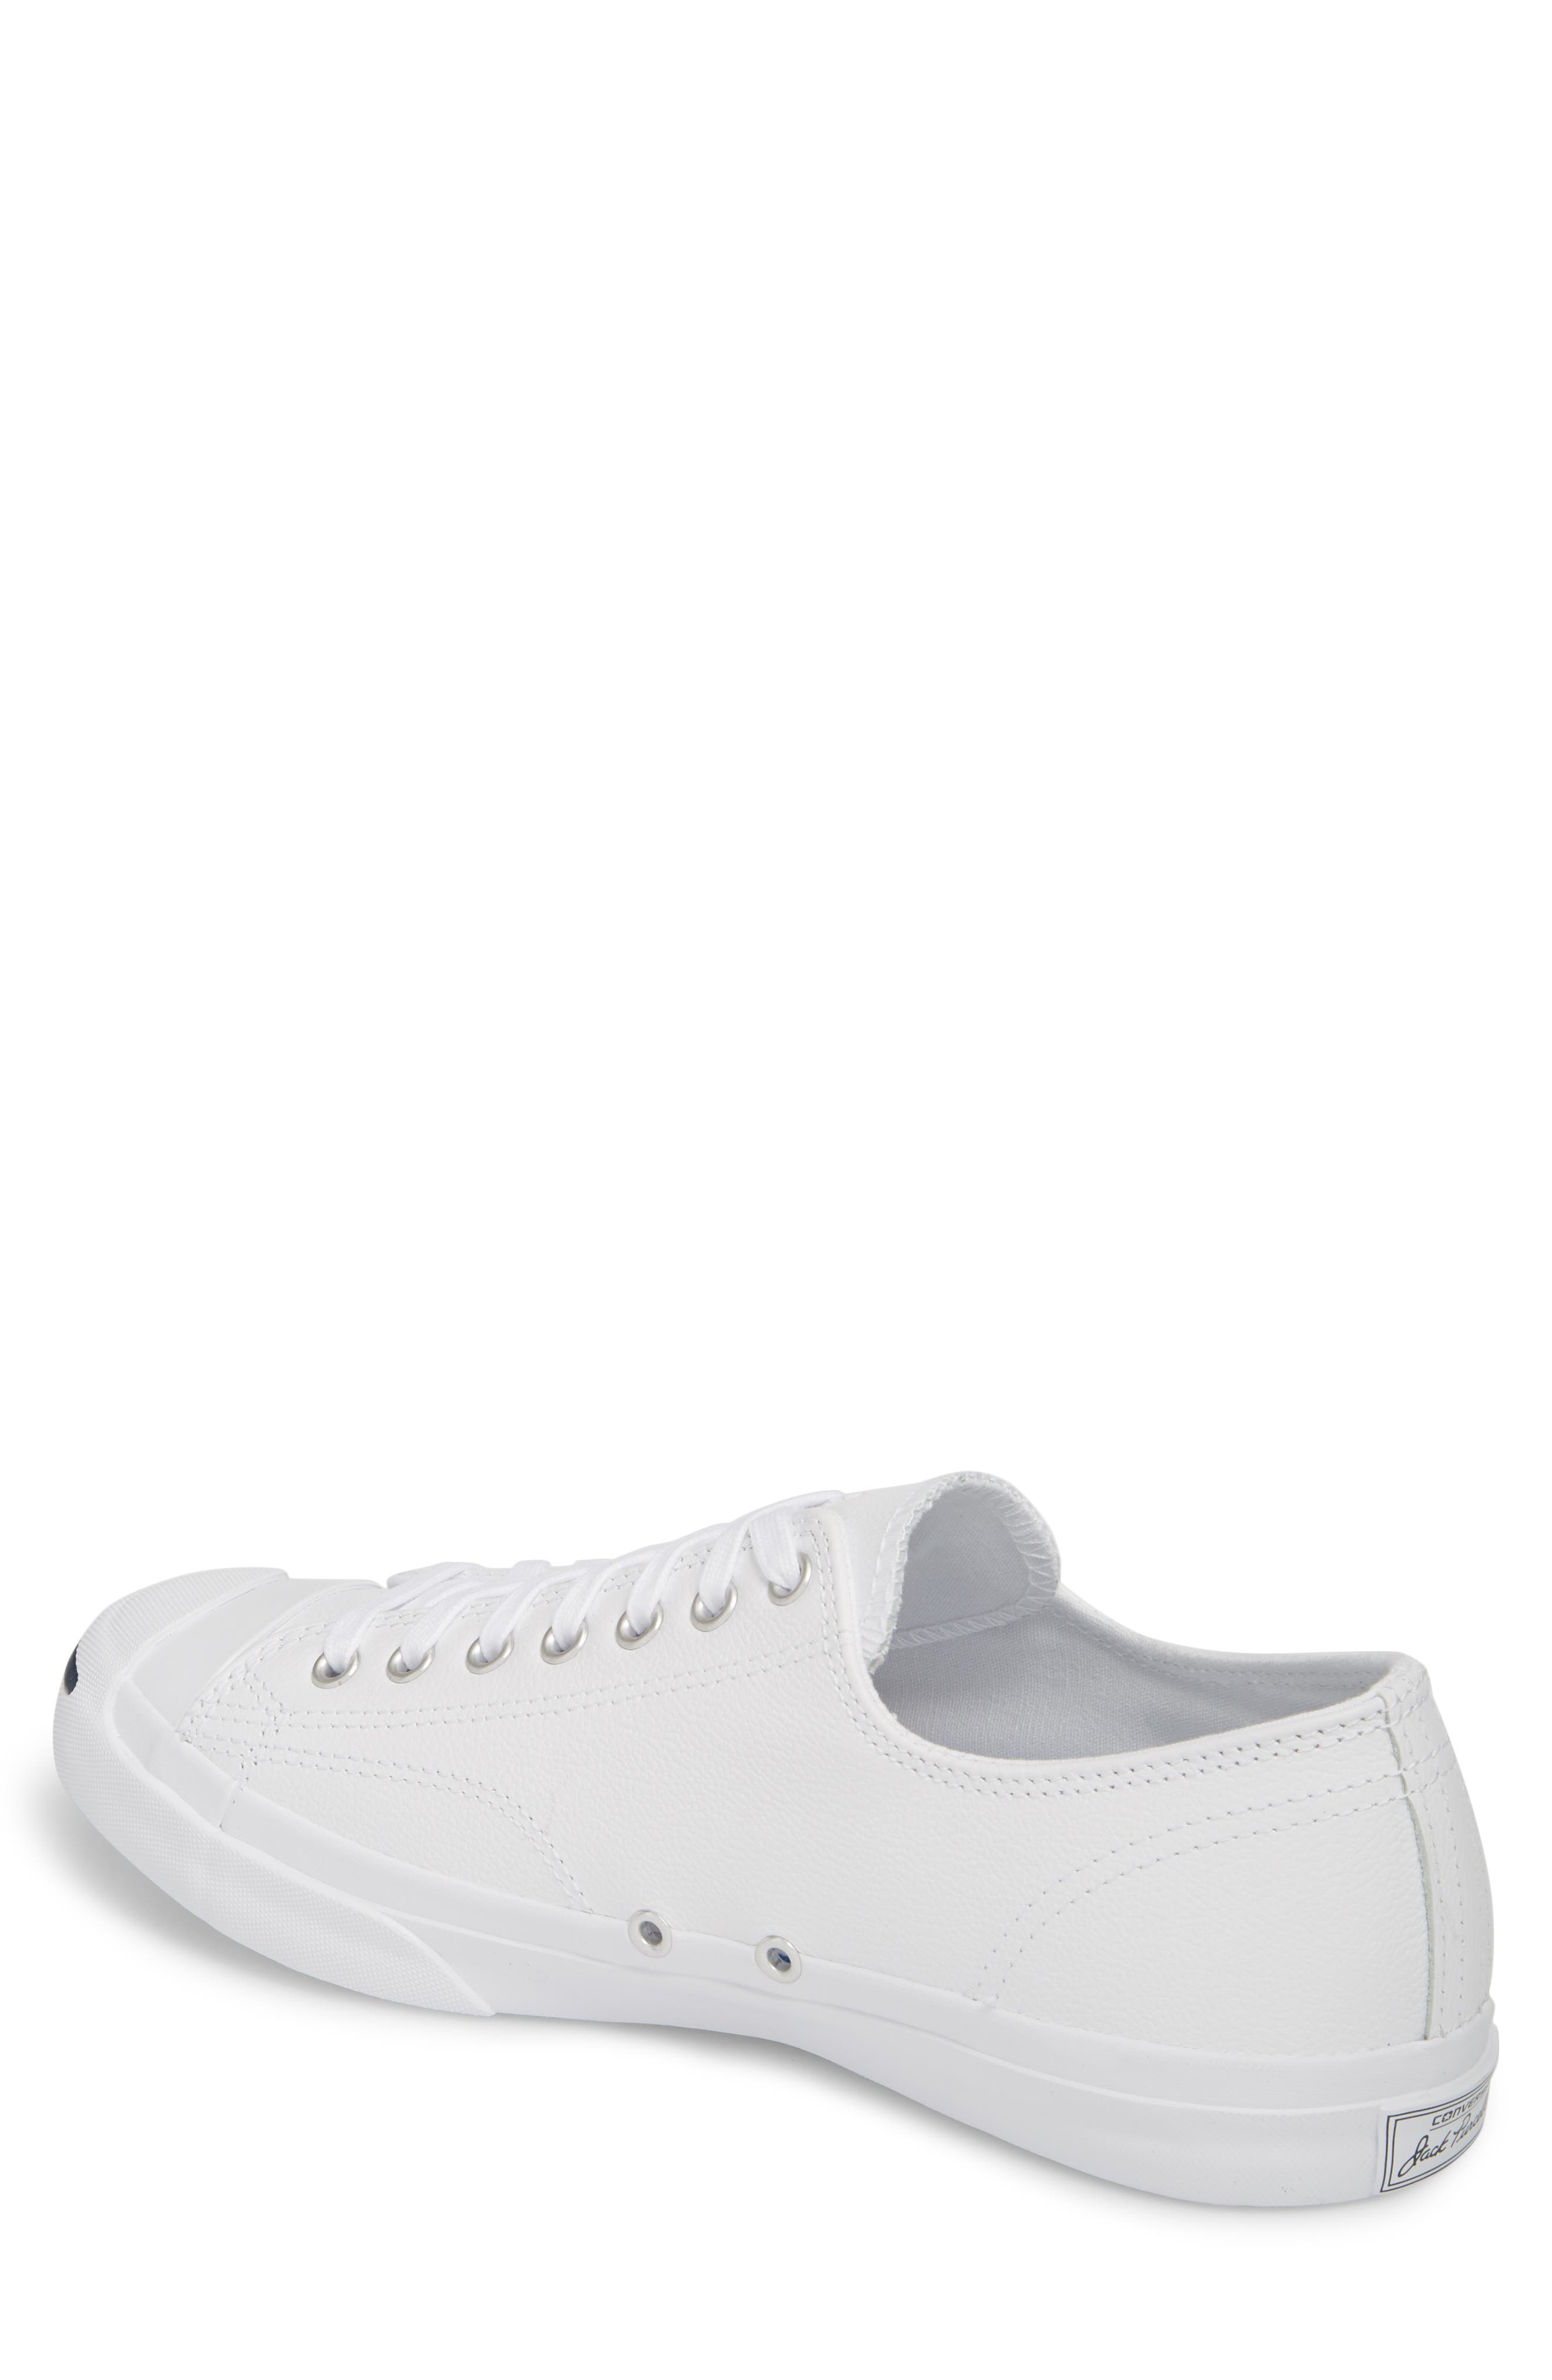 'Jack Purcell' Leather Sneaker,                             Alternate thumbnail 3, color,                             WHITE/ NAVY